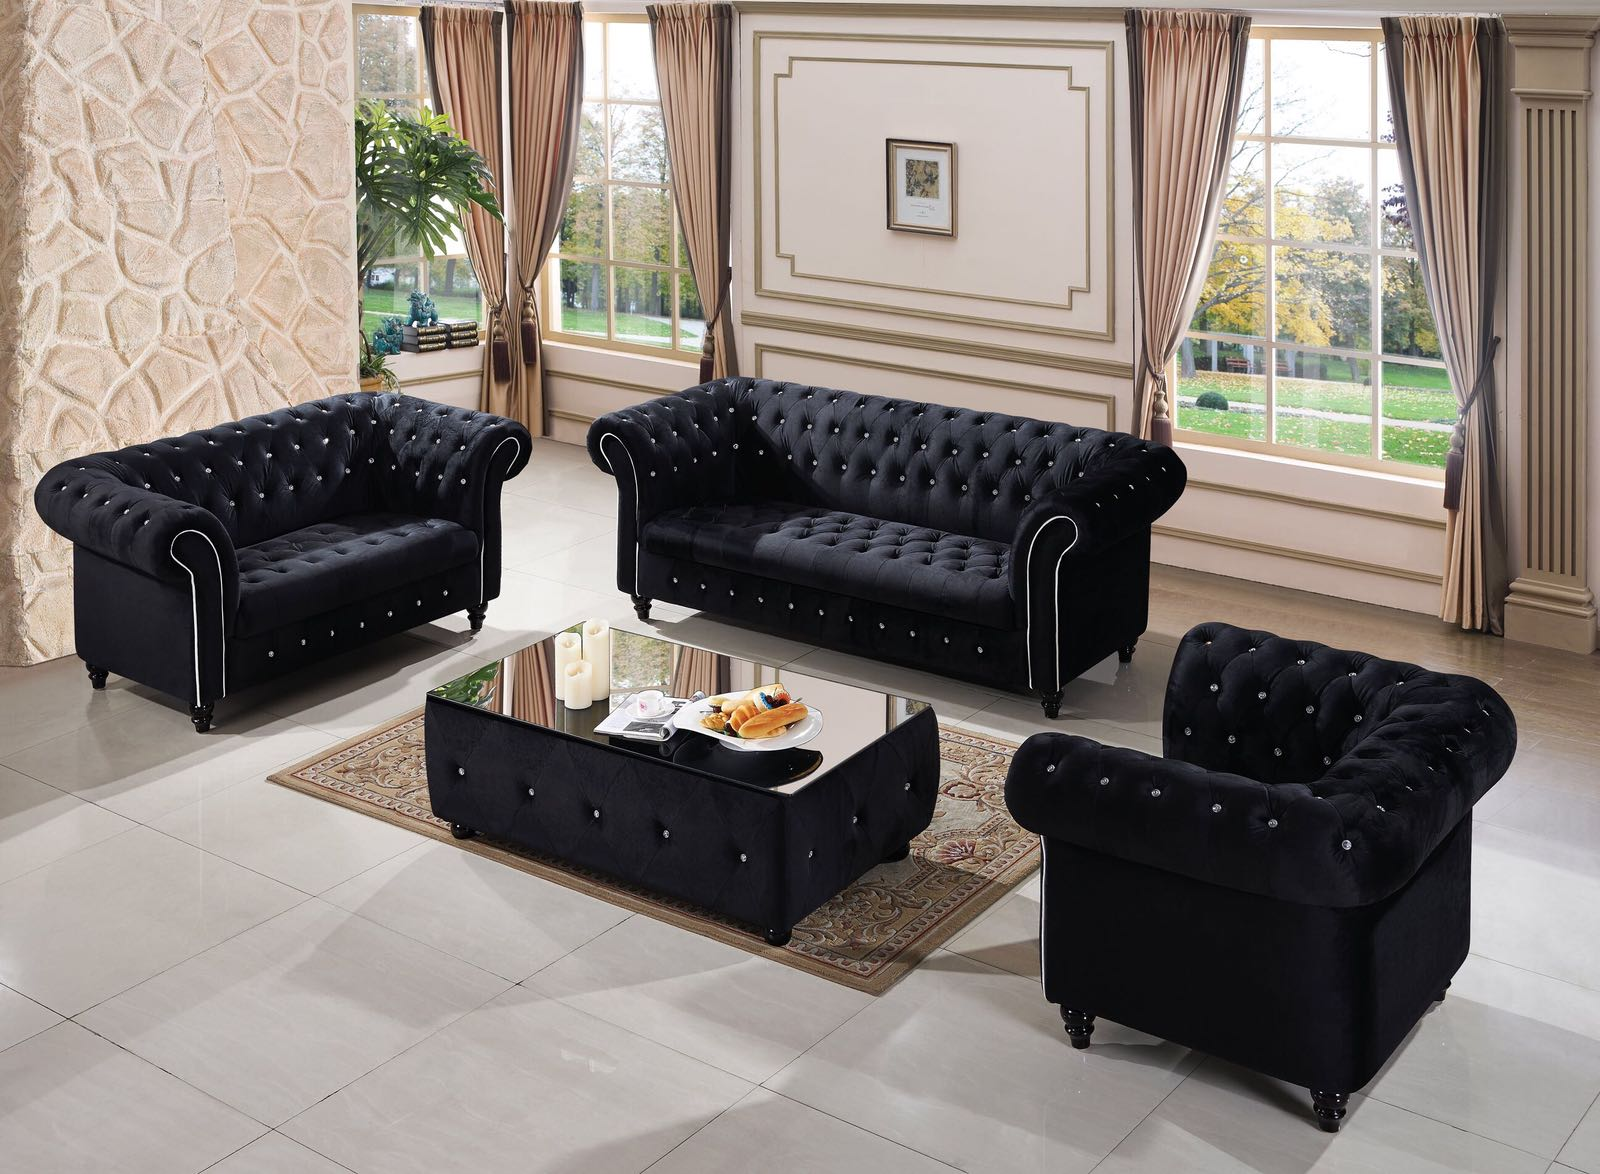 Kensington Black Chesterfield 3 2 1 Suite My Sofa World